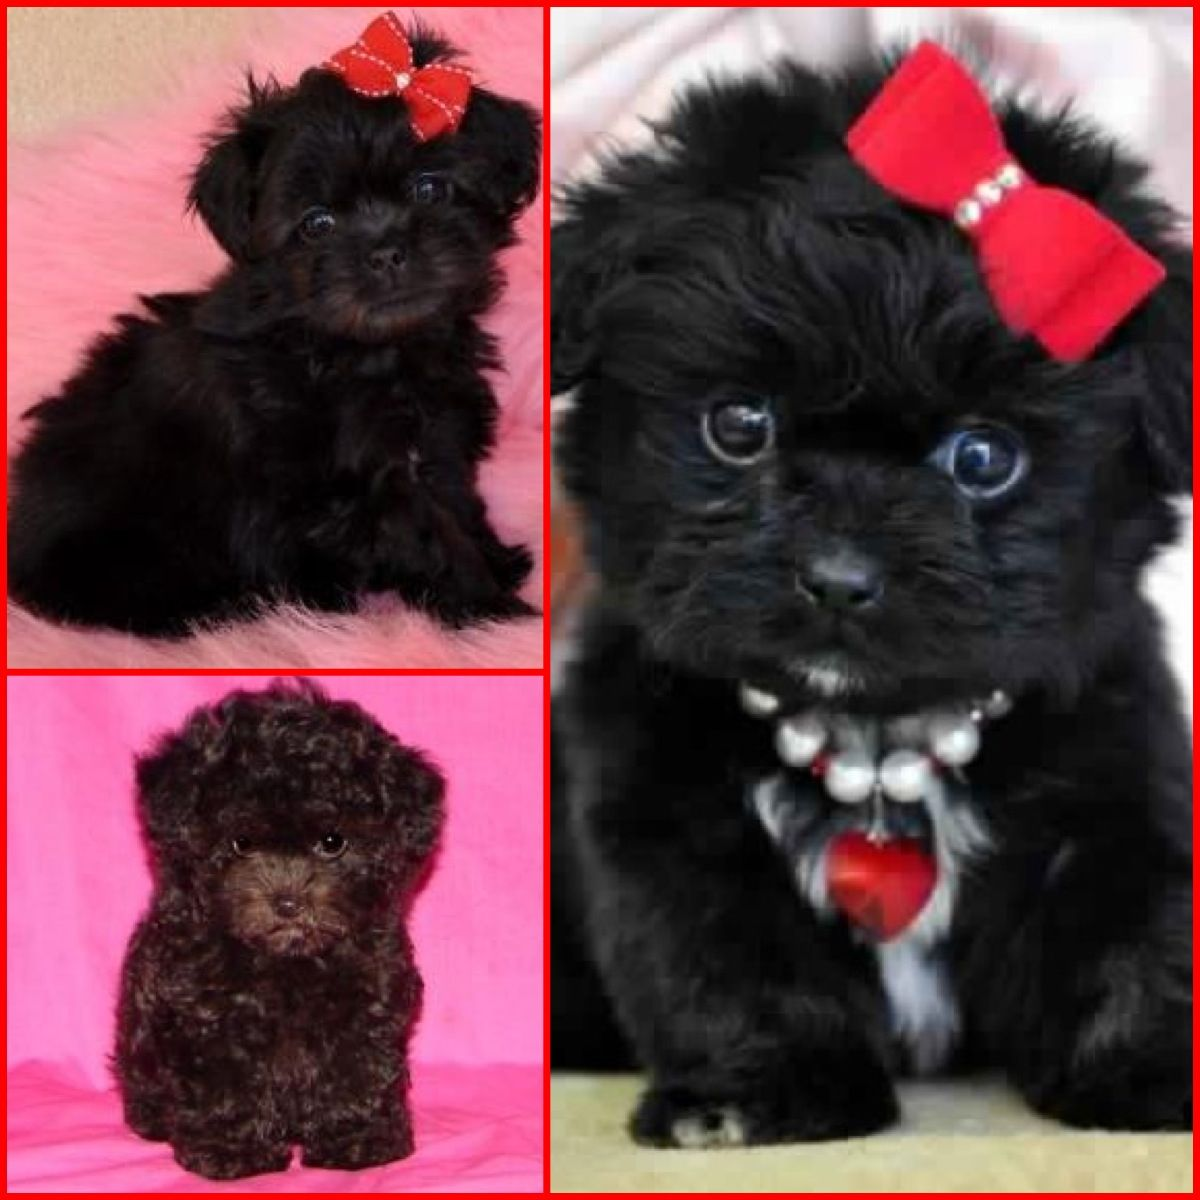 I Want A Black Teacup Peekapoo Or A Red Teacup Poodle Cute